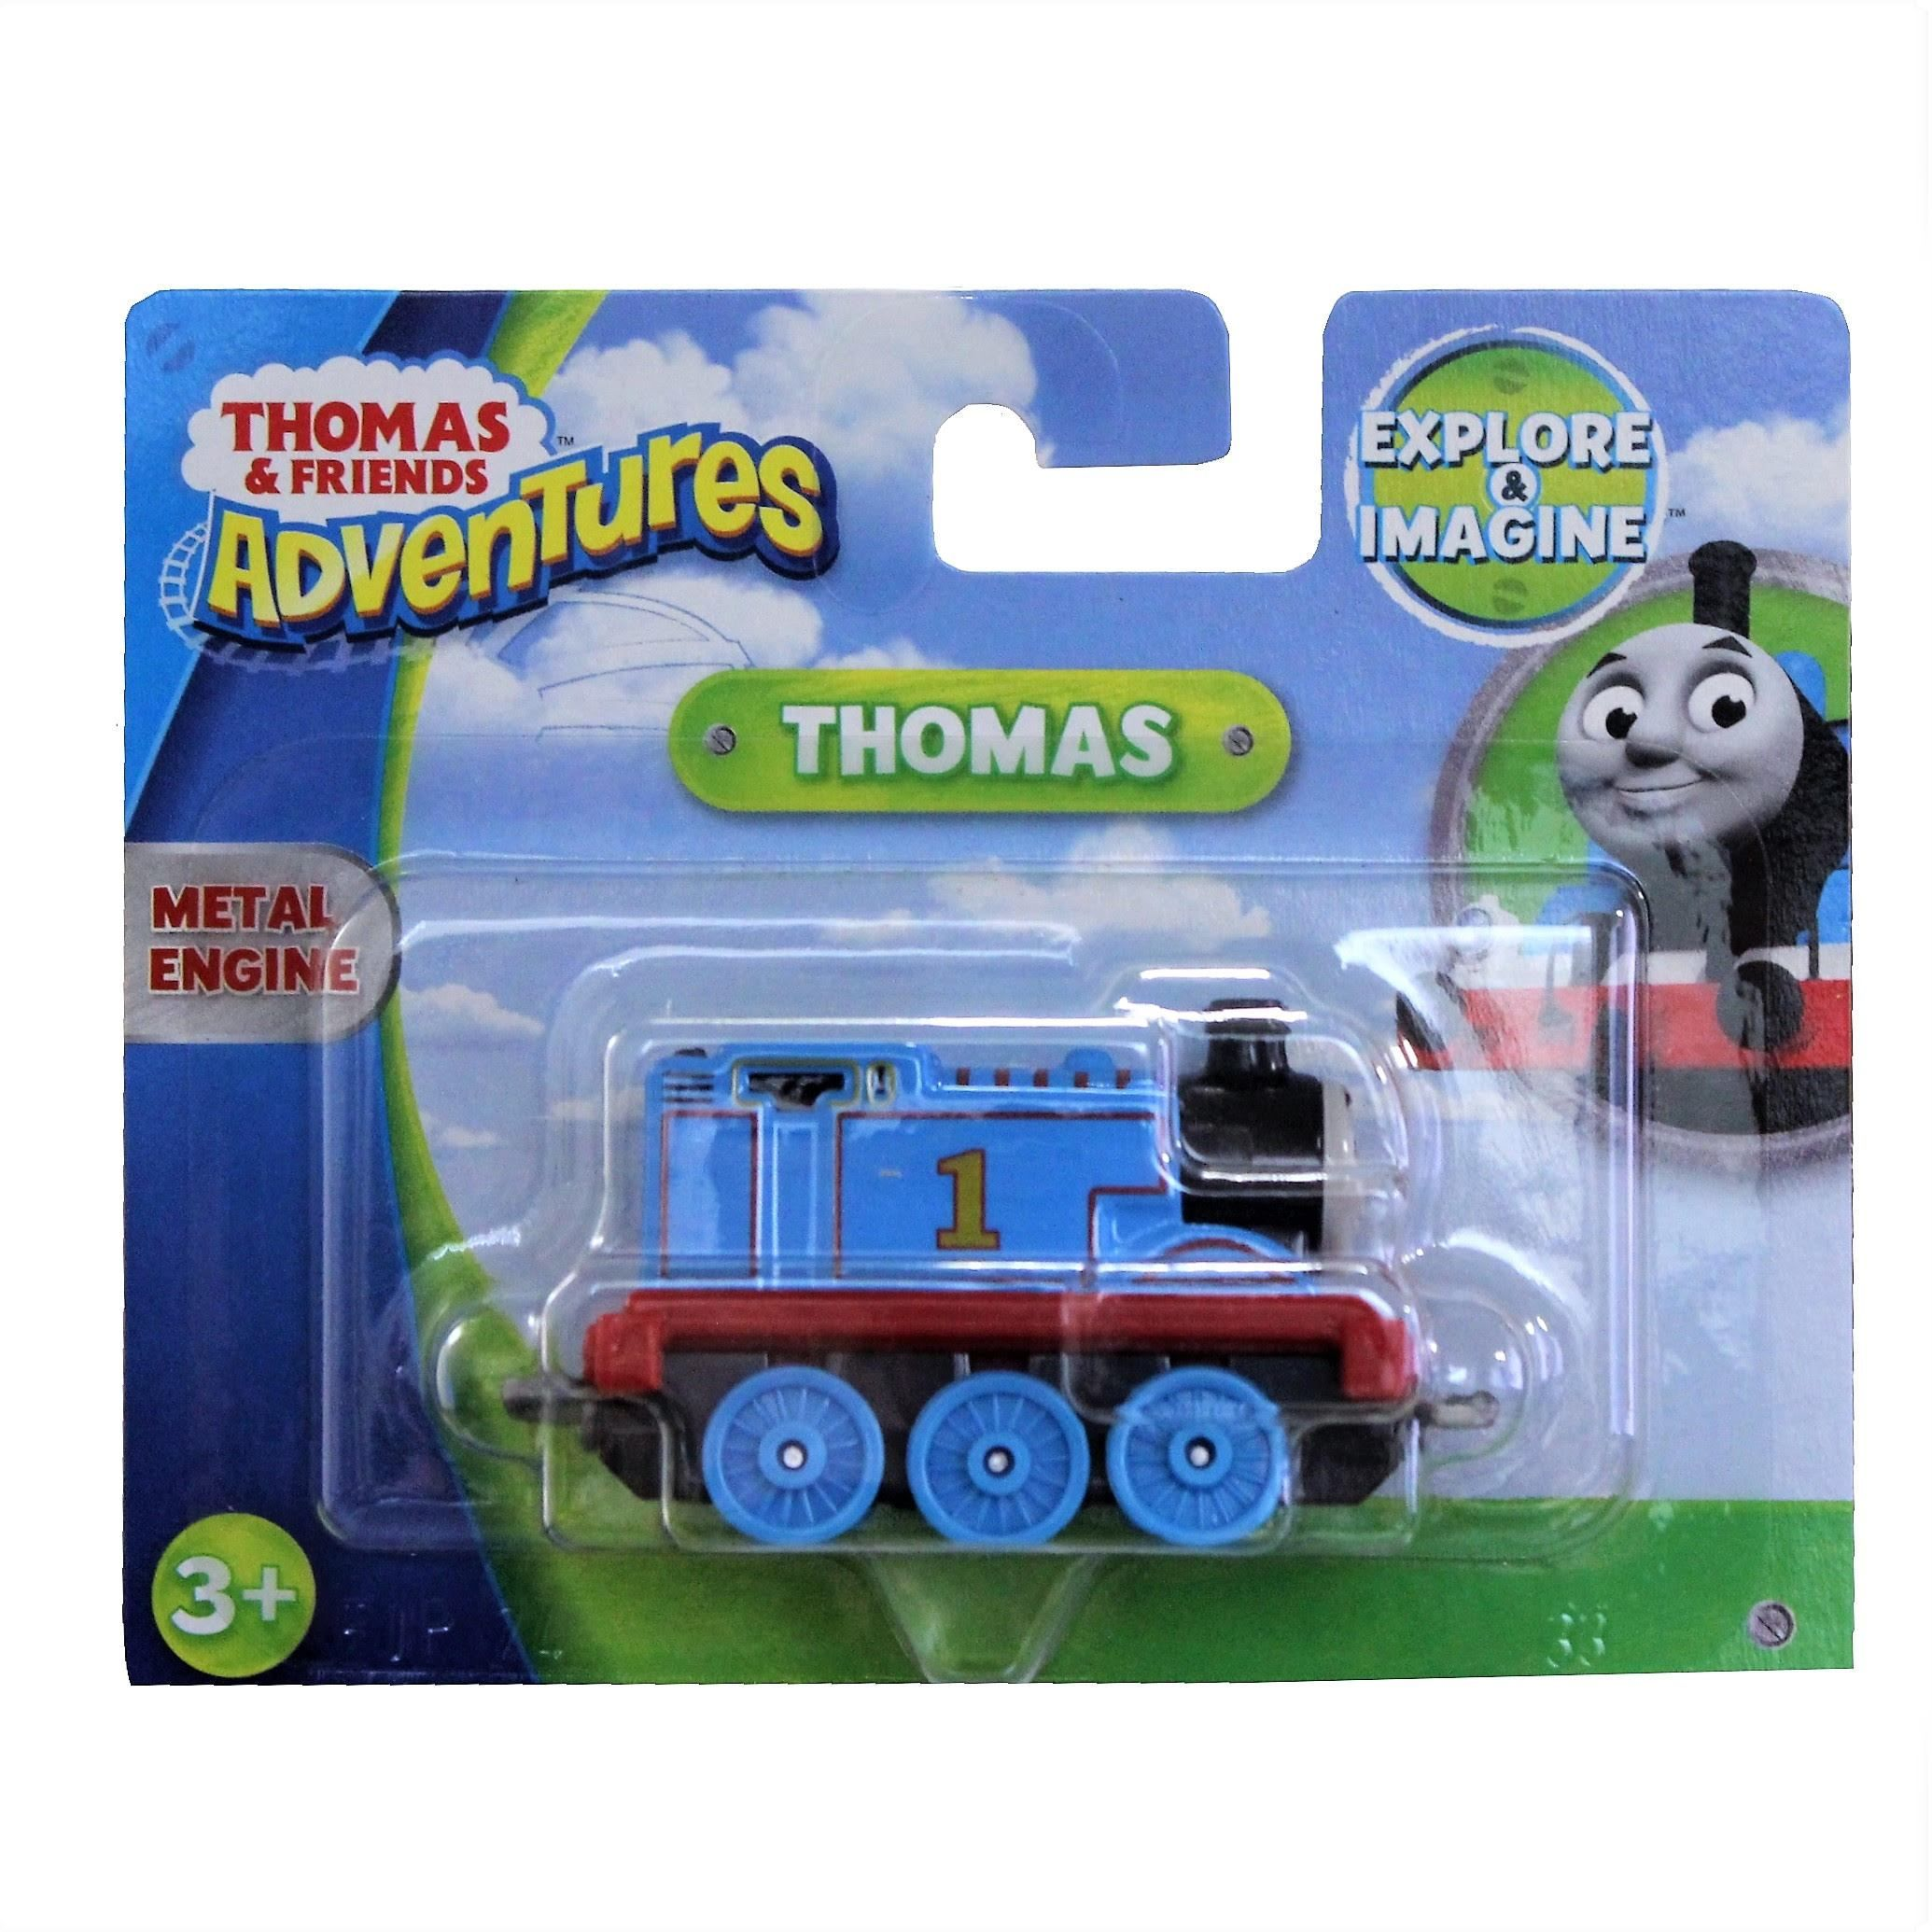 Thomas and Friends Adventure Small Die-Cast Engine - Thomas